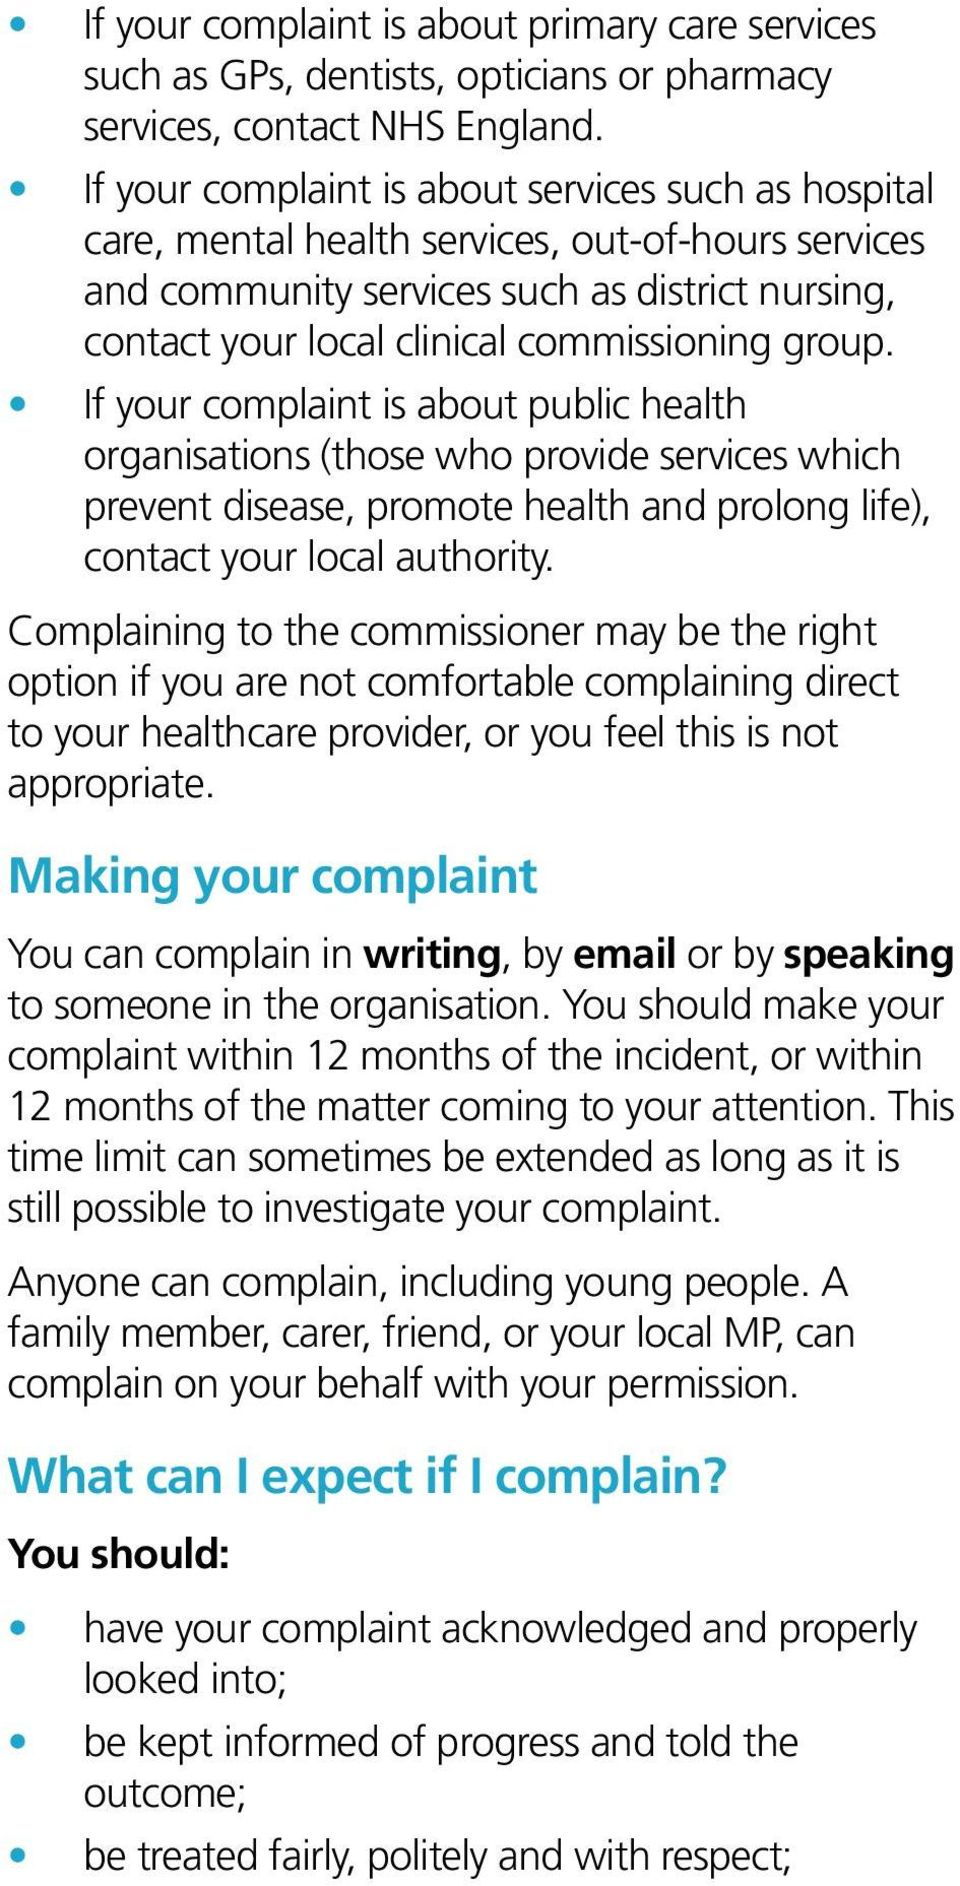 group. If your complaint is about public health organisations (those who provide services which prevent disease, promote health and prolong life), contact your local authority.